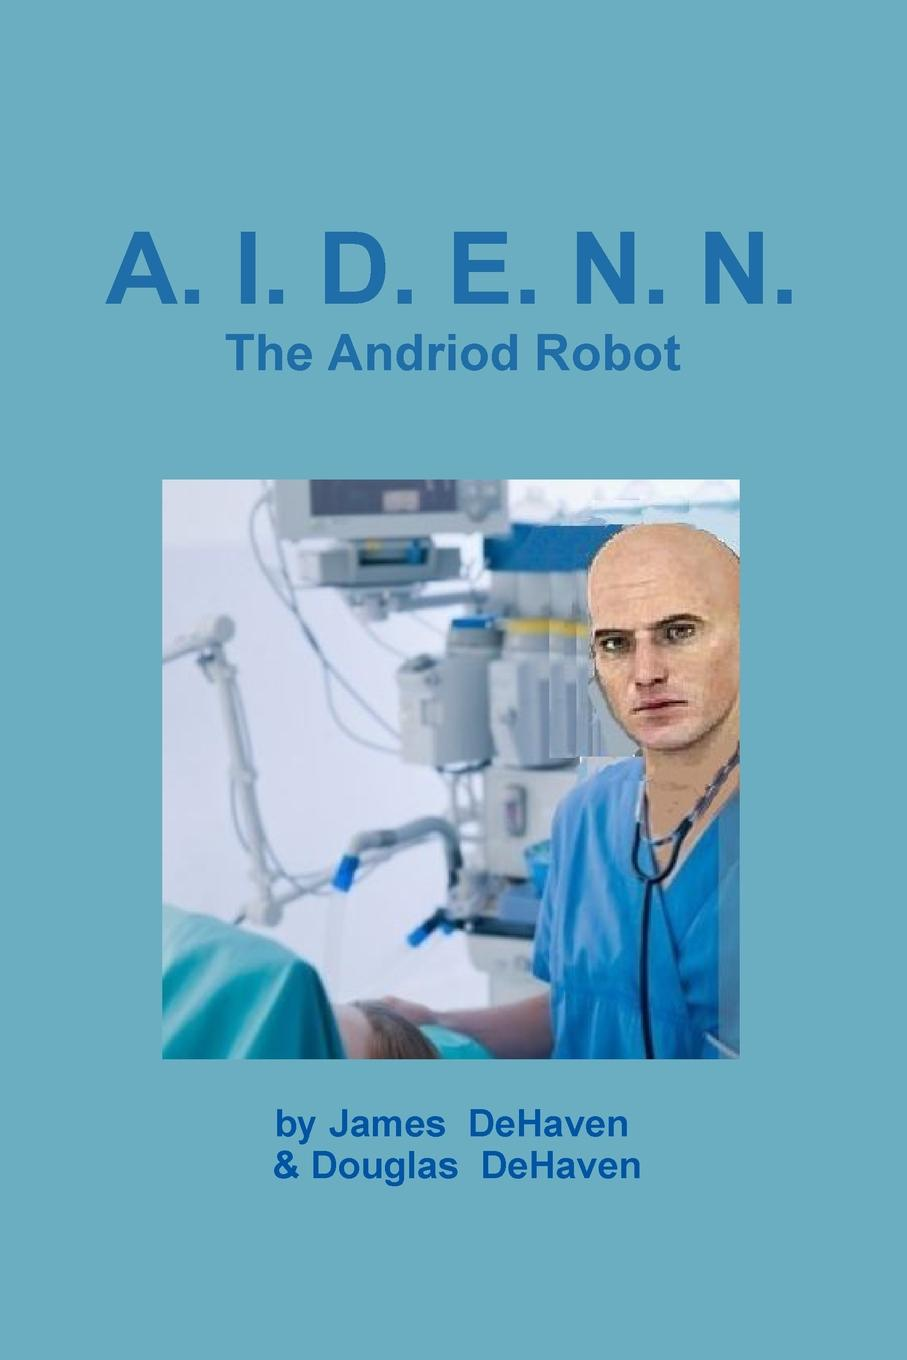 лучшая цена Douglas DeHaven, James DeHaven A.I.D.E.N.N. The Android Robot